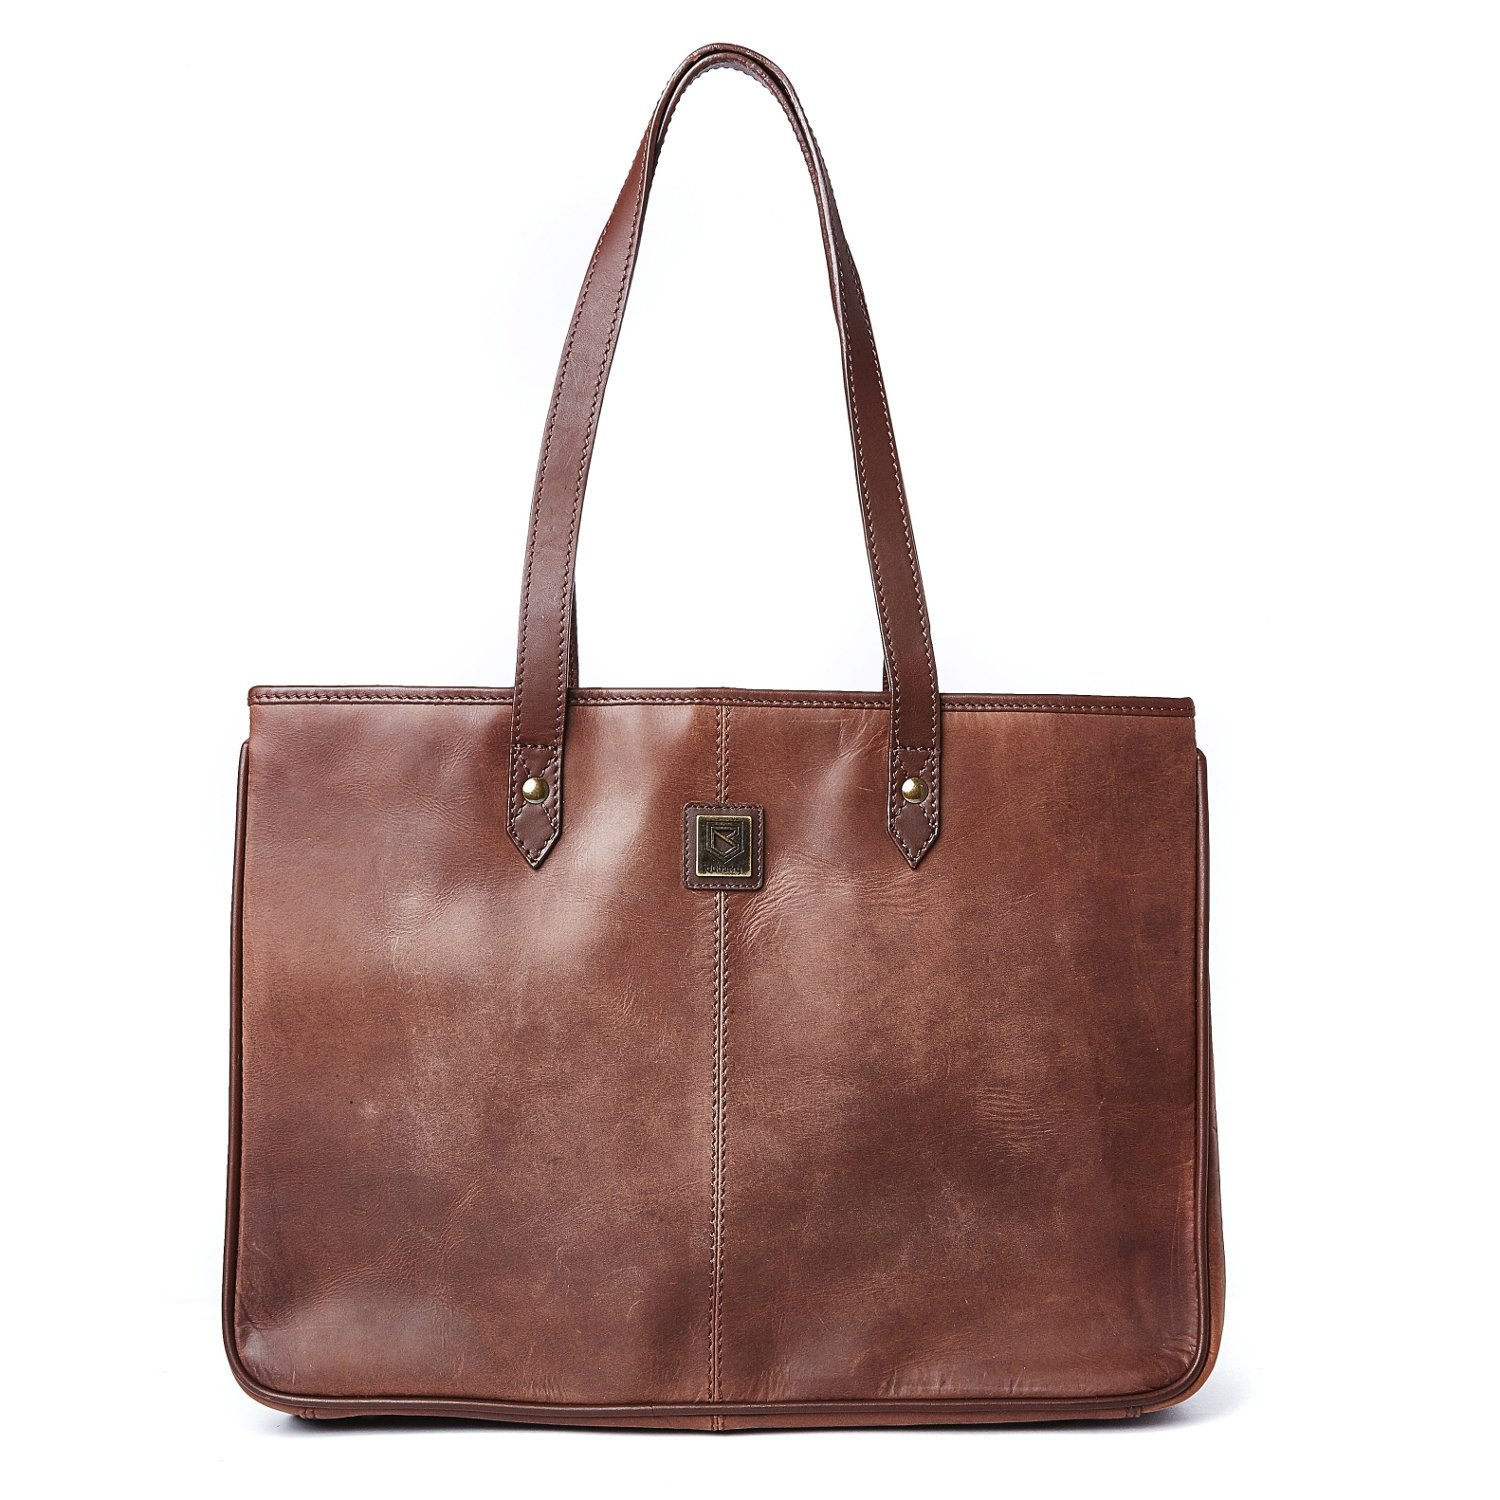 9e9fd700e3 Dubarry Handbags